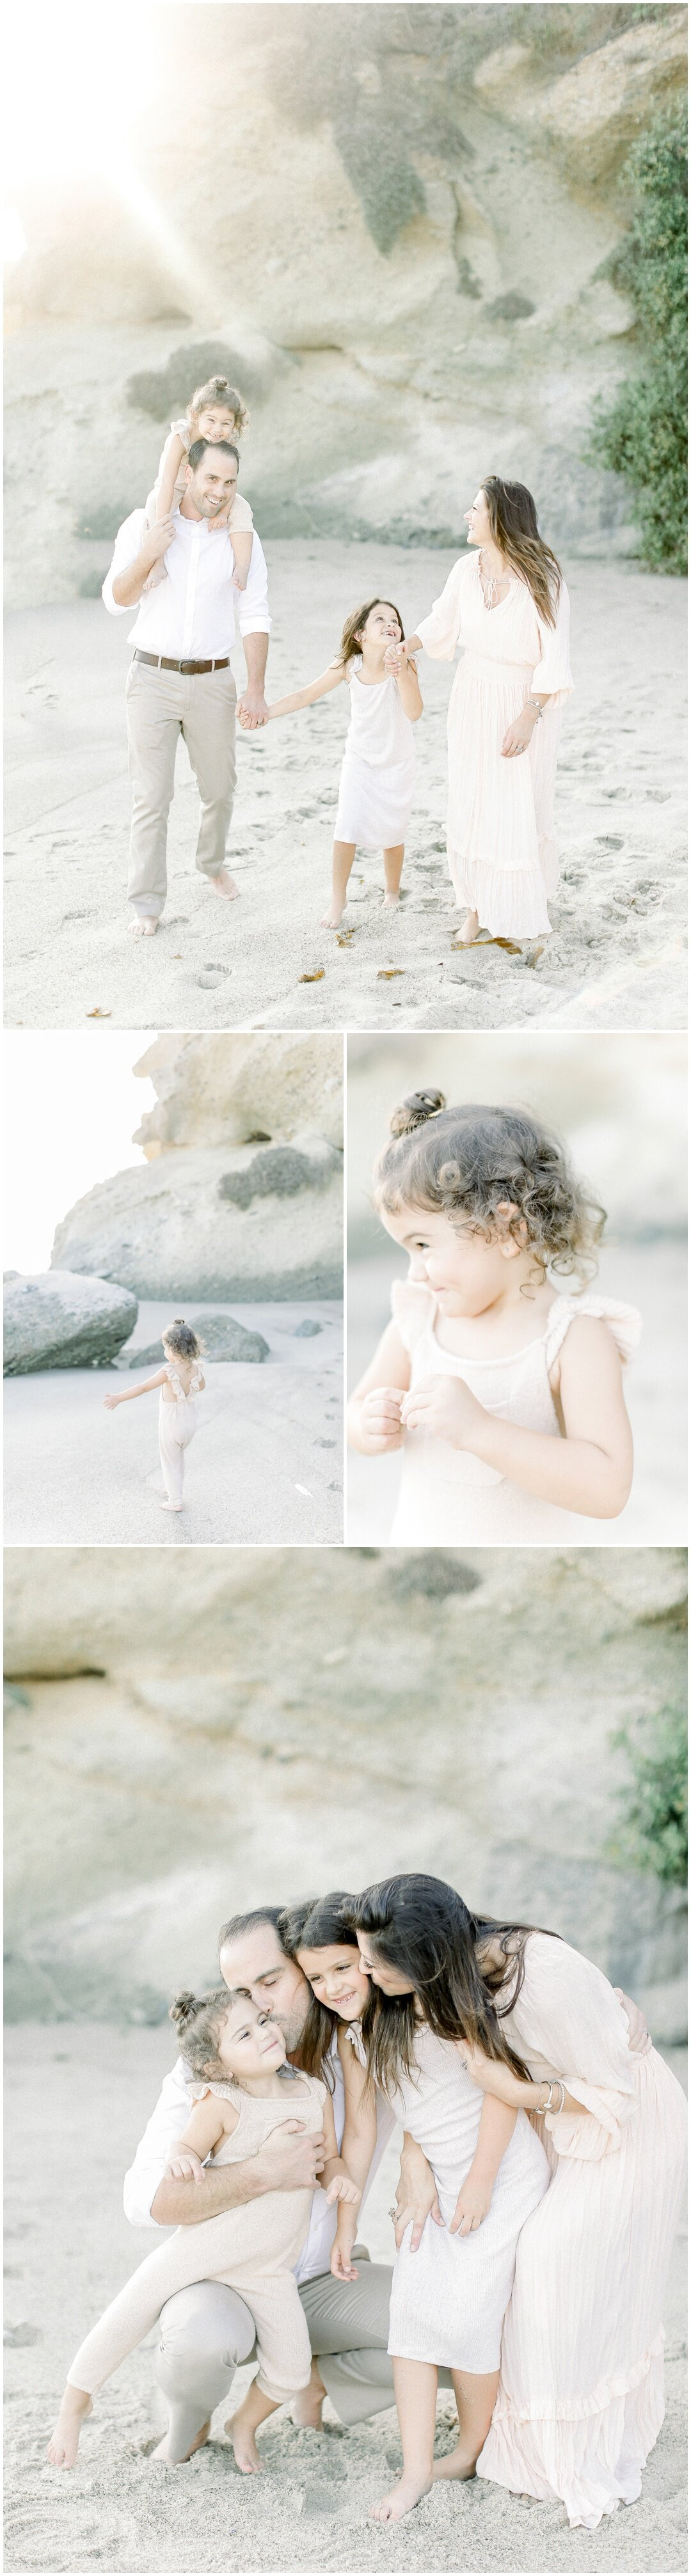 Newport+Beach+Newborn+Maternity+Photographer+Orange+County+Family+Photographer+Cori+Kleckner+Photography+Natalie+Hay+Loretz+Robert+Hay+The+Hay+Family_4434.jpg